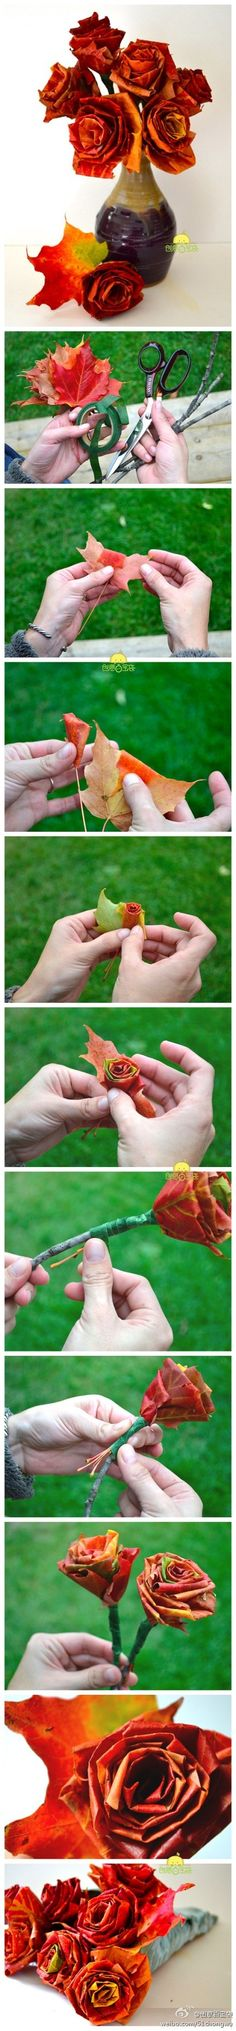 How to make flowers out of fall leaves